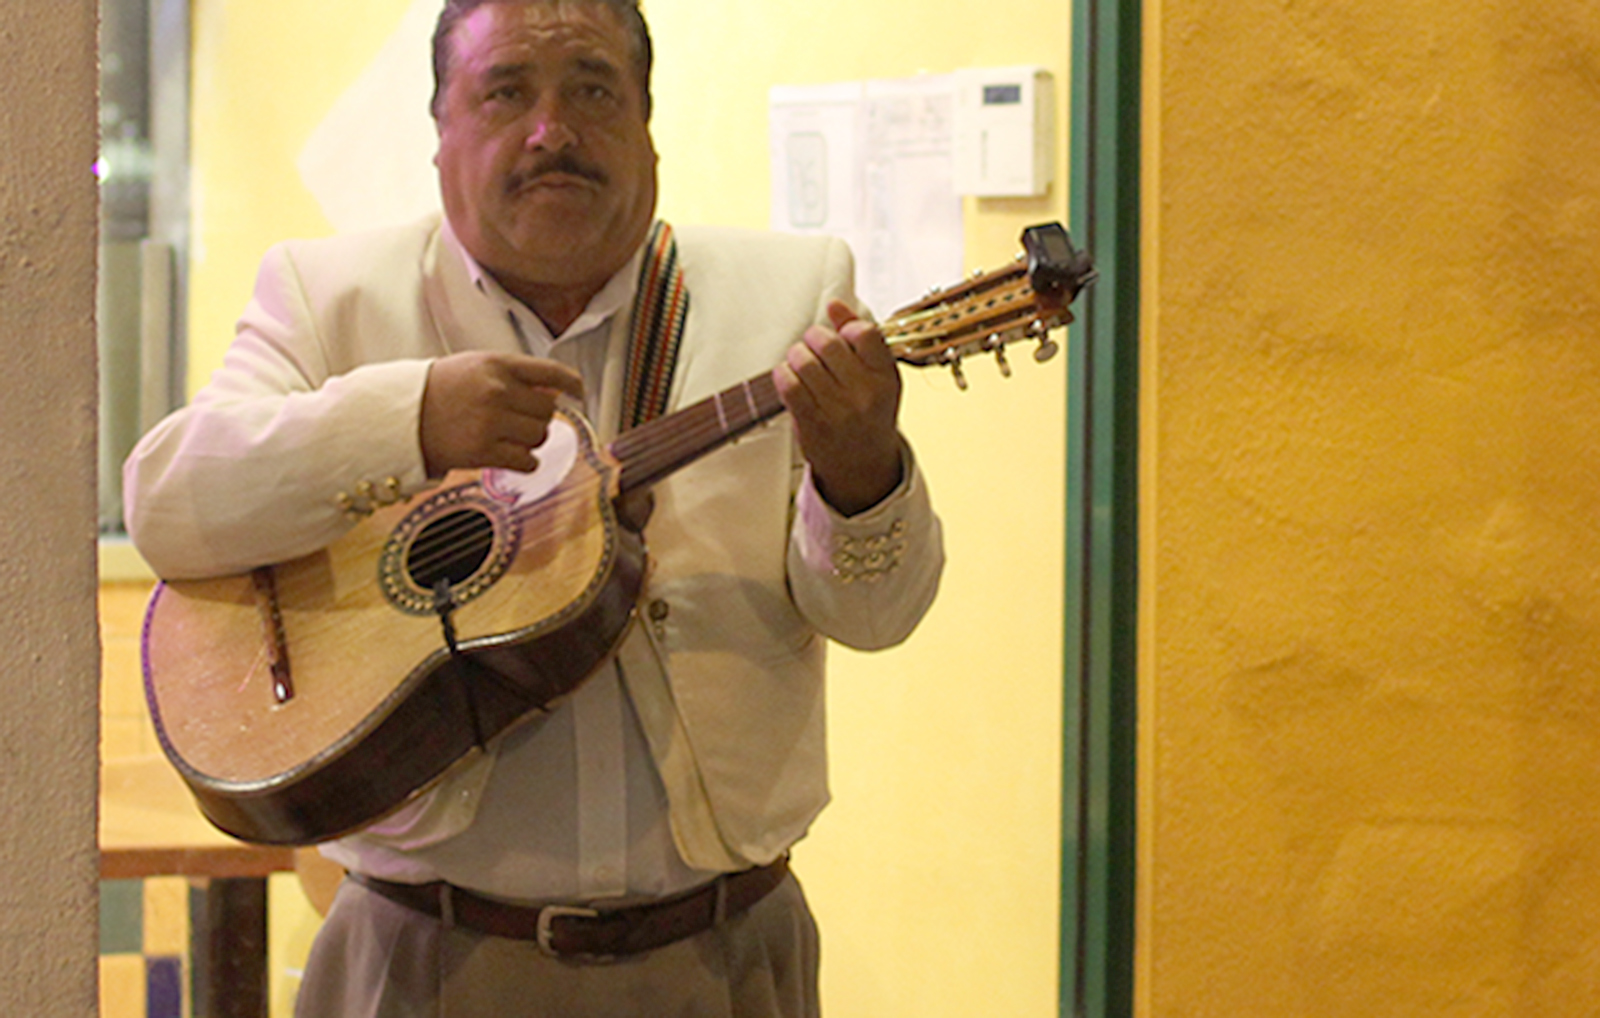 A mariachi plays his guitar.